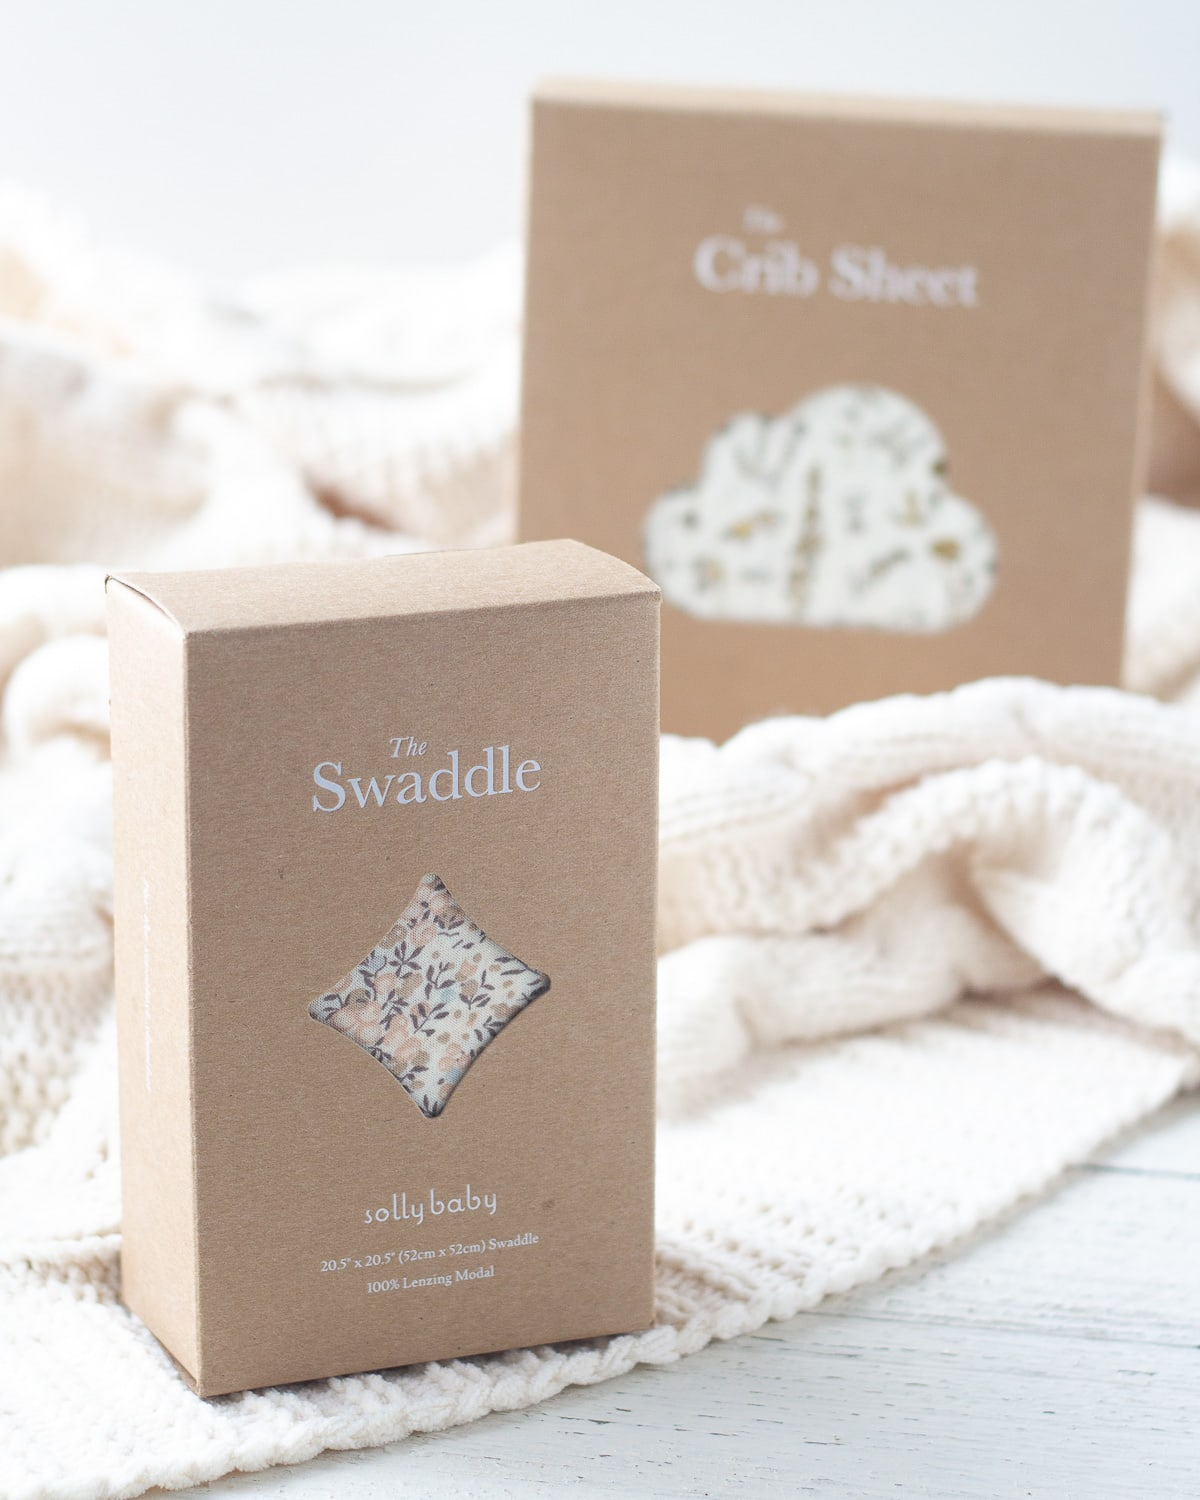 A Solly Baby Swaddle in the original box.